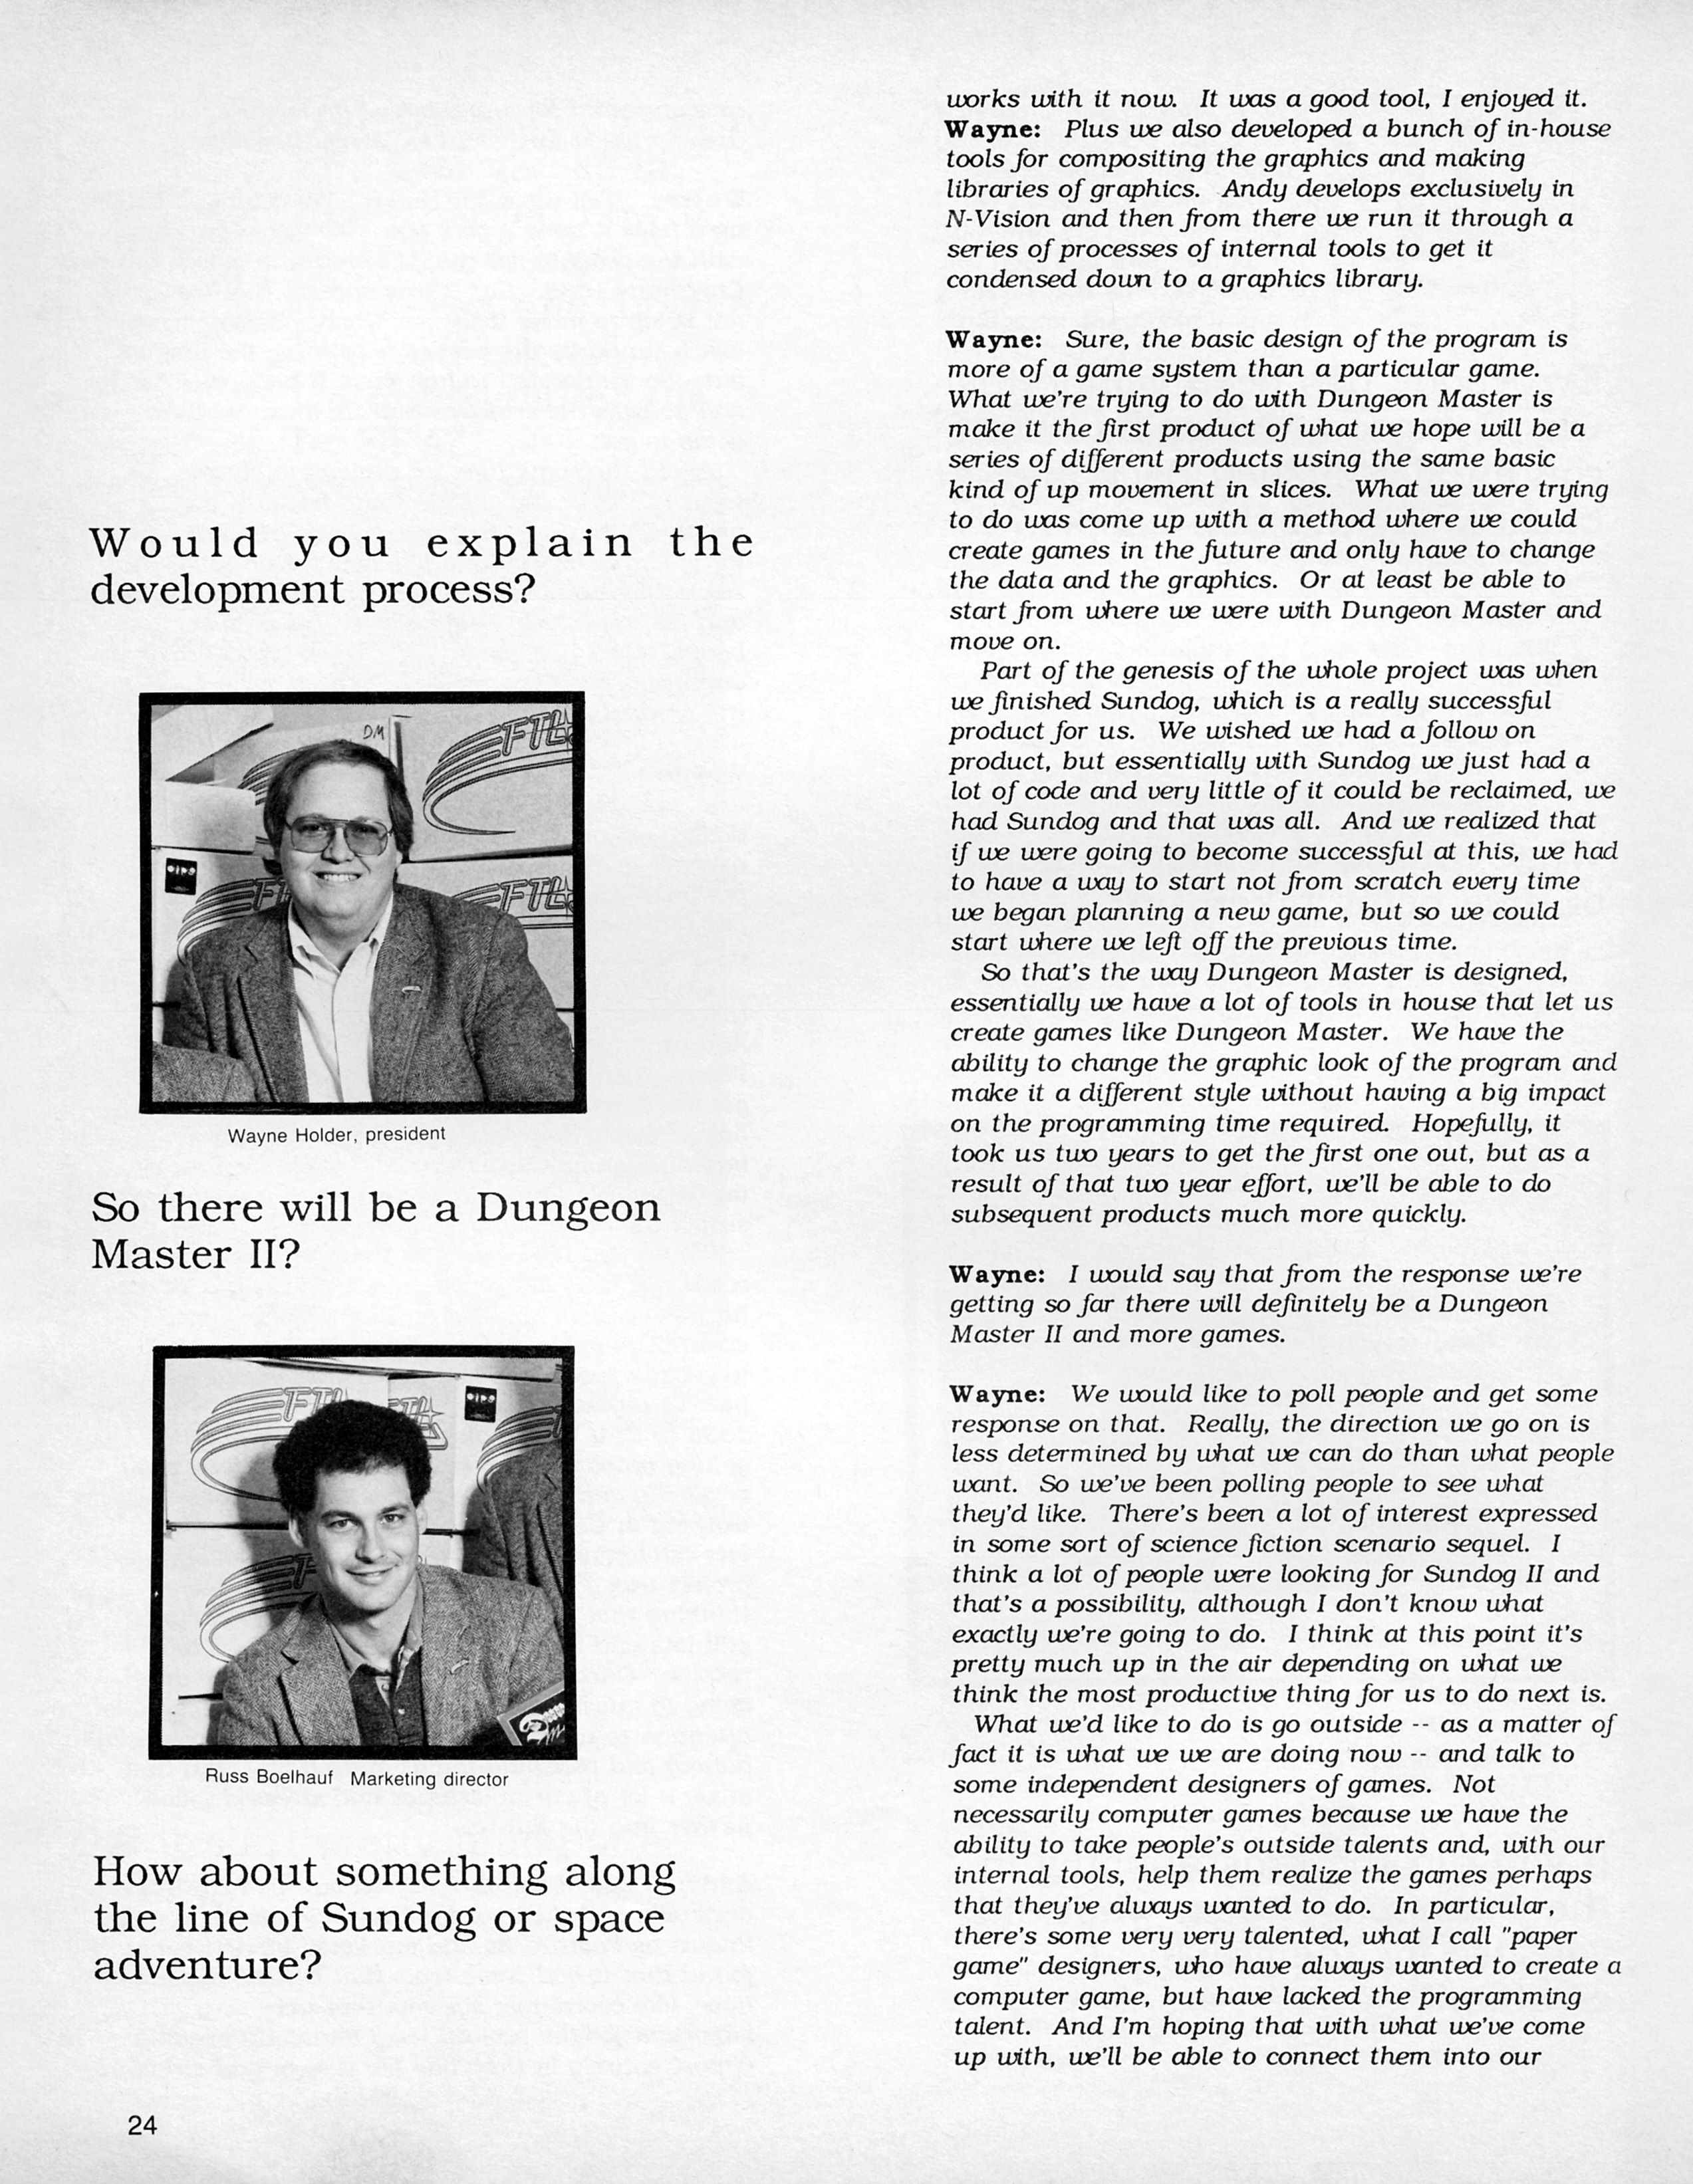 FTL Interview published in American magazine 'ST X-PRESS', Vol 2 No 2 March 1988, Page 24